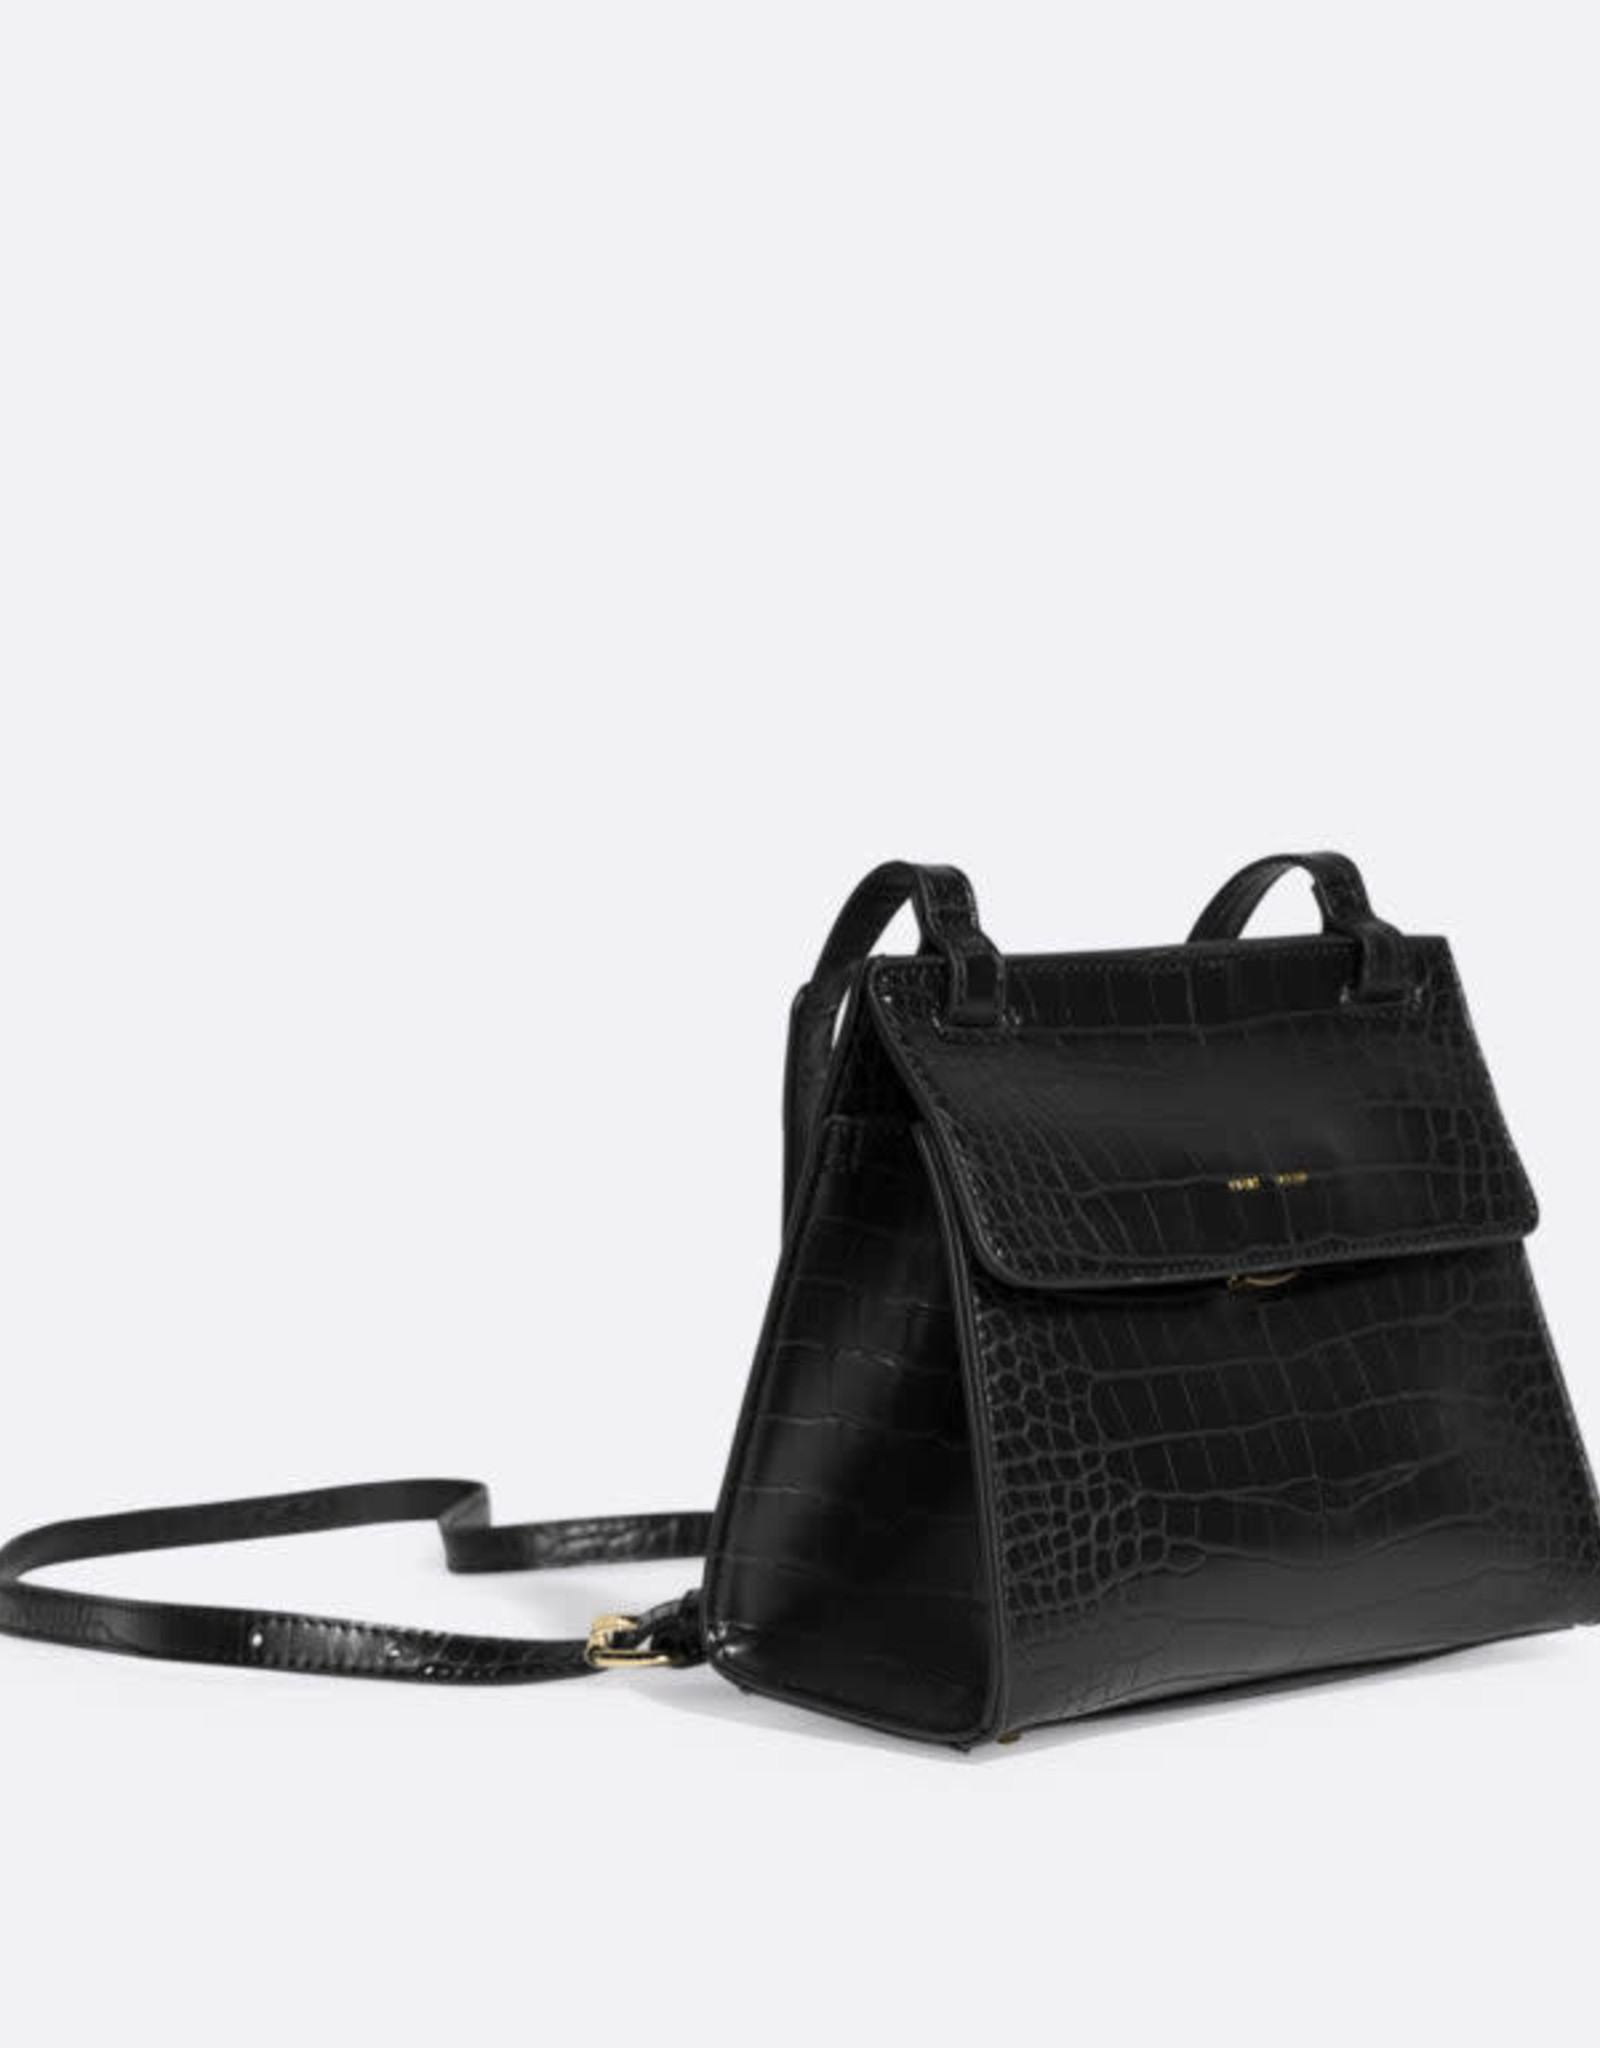 Pixie mood - Sac bandoulière - Christy Noir croco